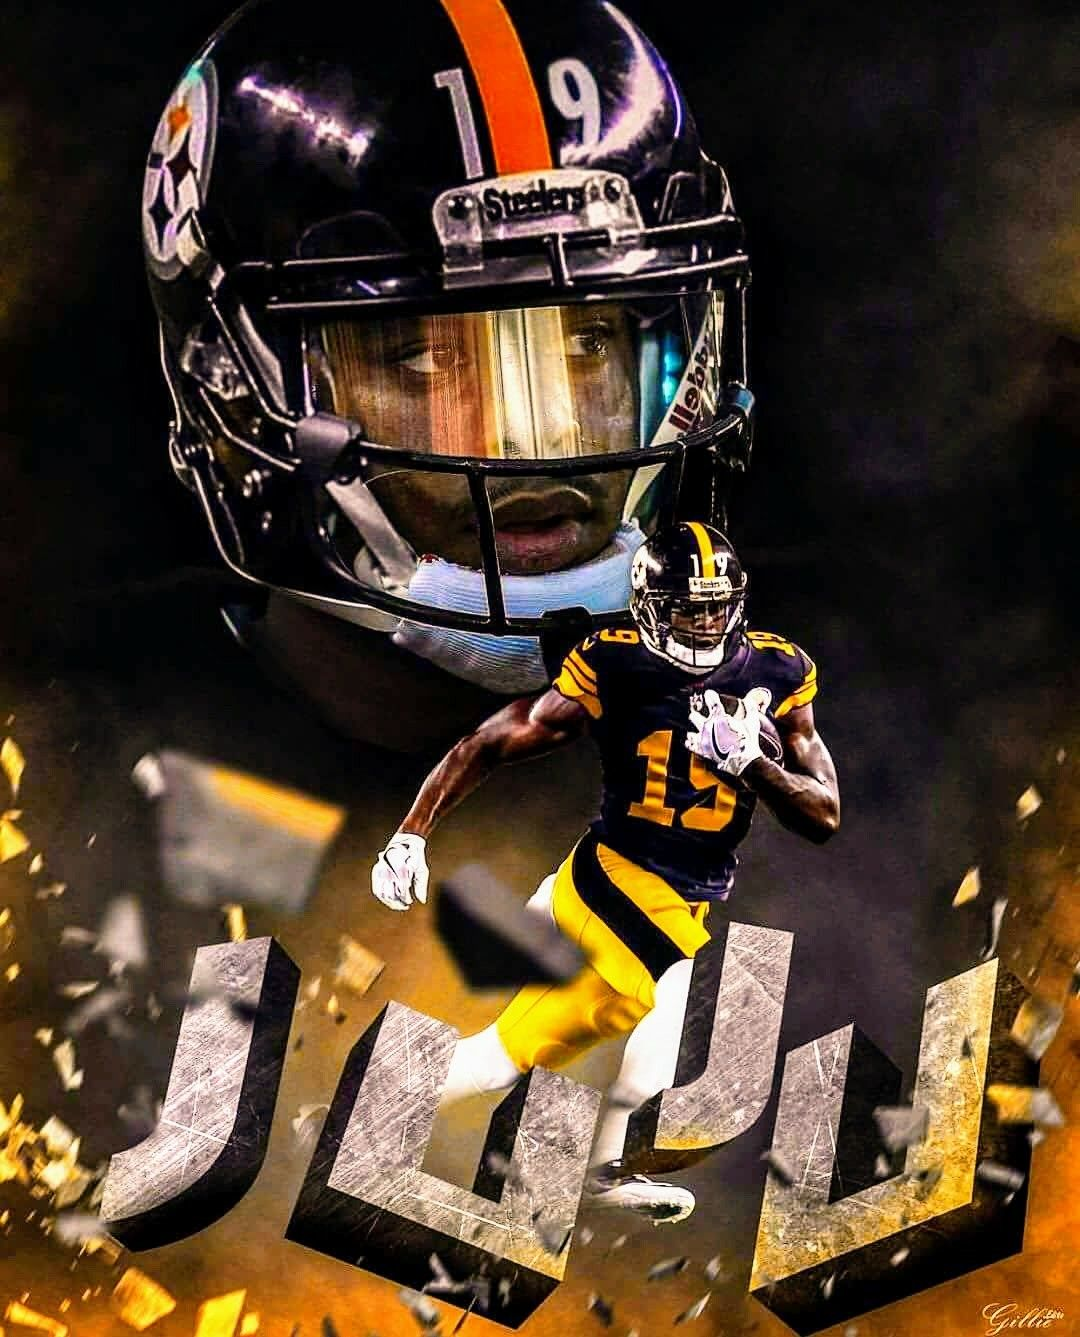 552d6cdcd1f steelergalfan4life 🖤💛 - JuJu Smith-Schuster WR Pittsburgh Steelers  Players